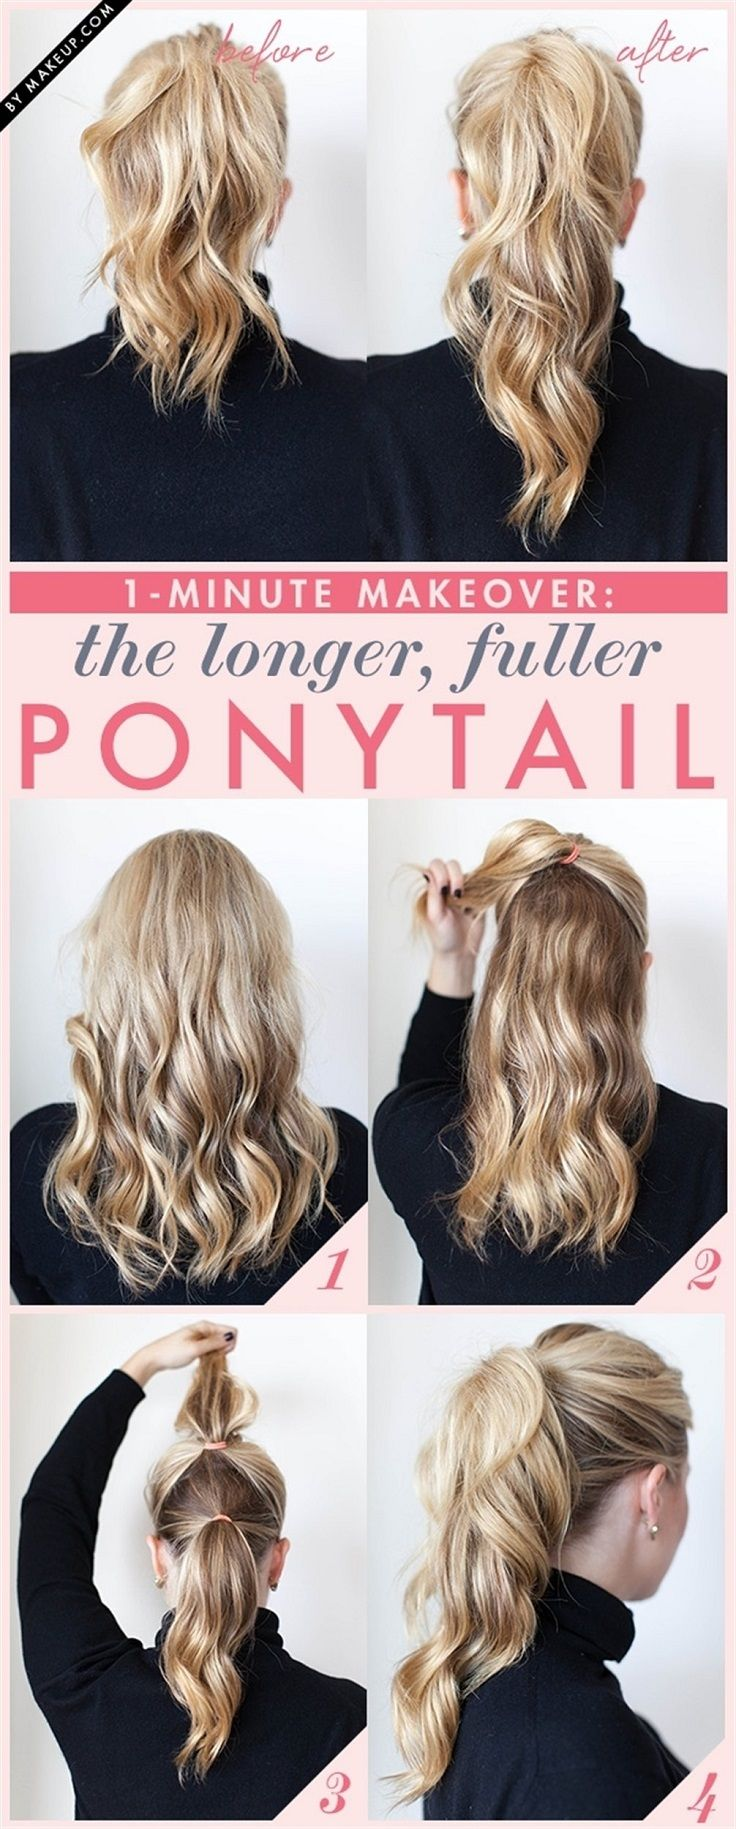 top 10 beautiful and easy ponytail hairstyles | share